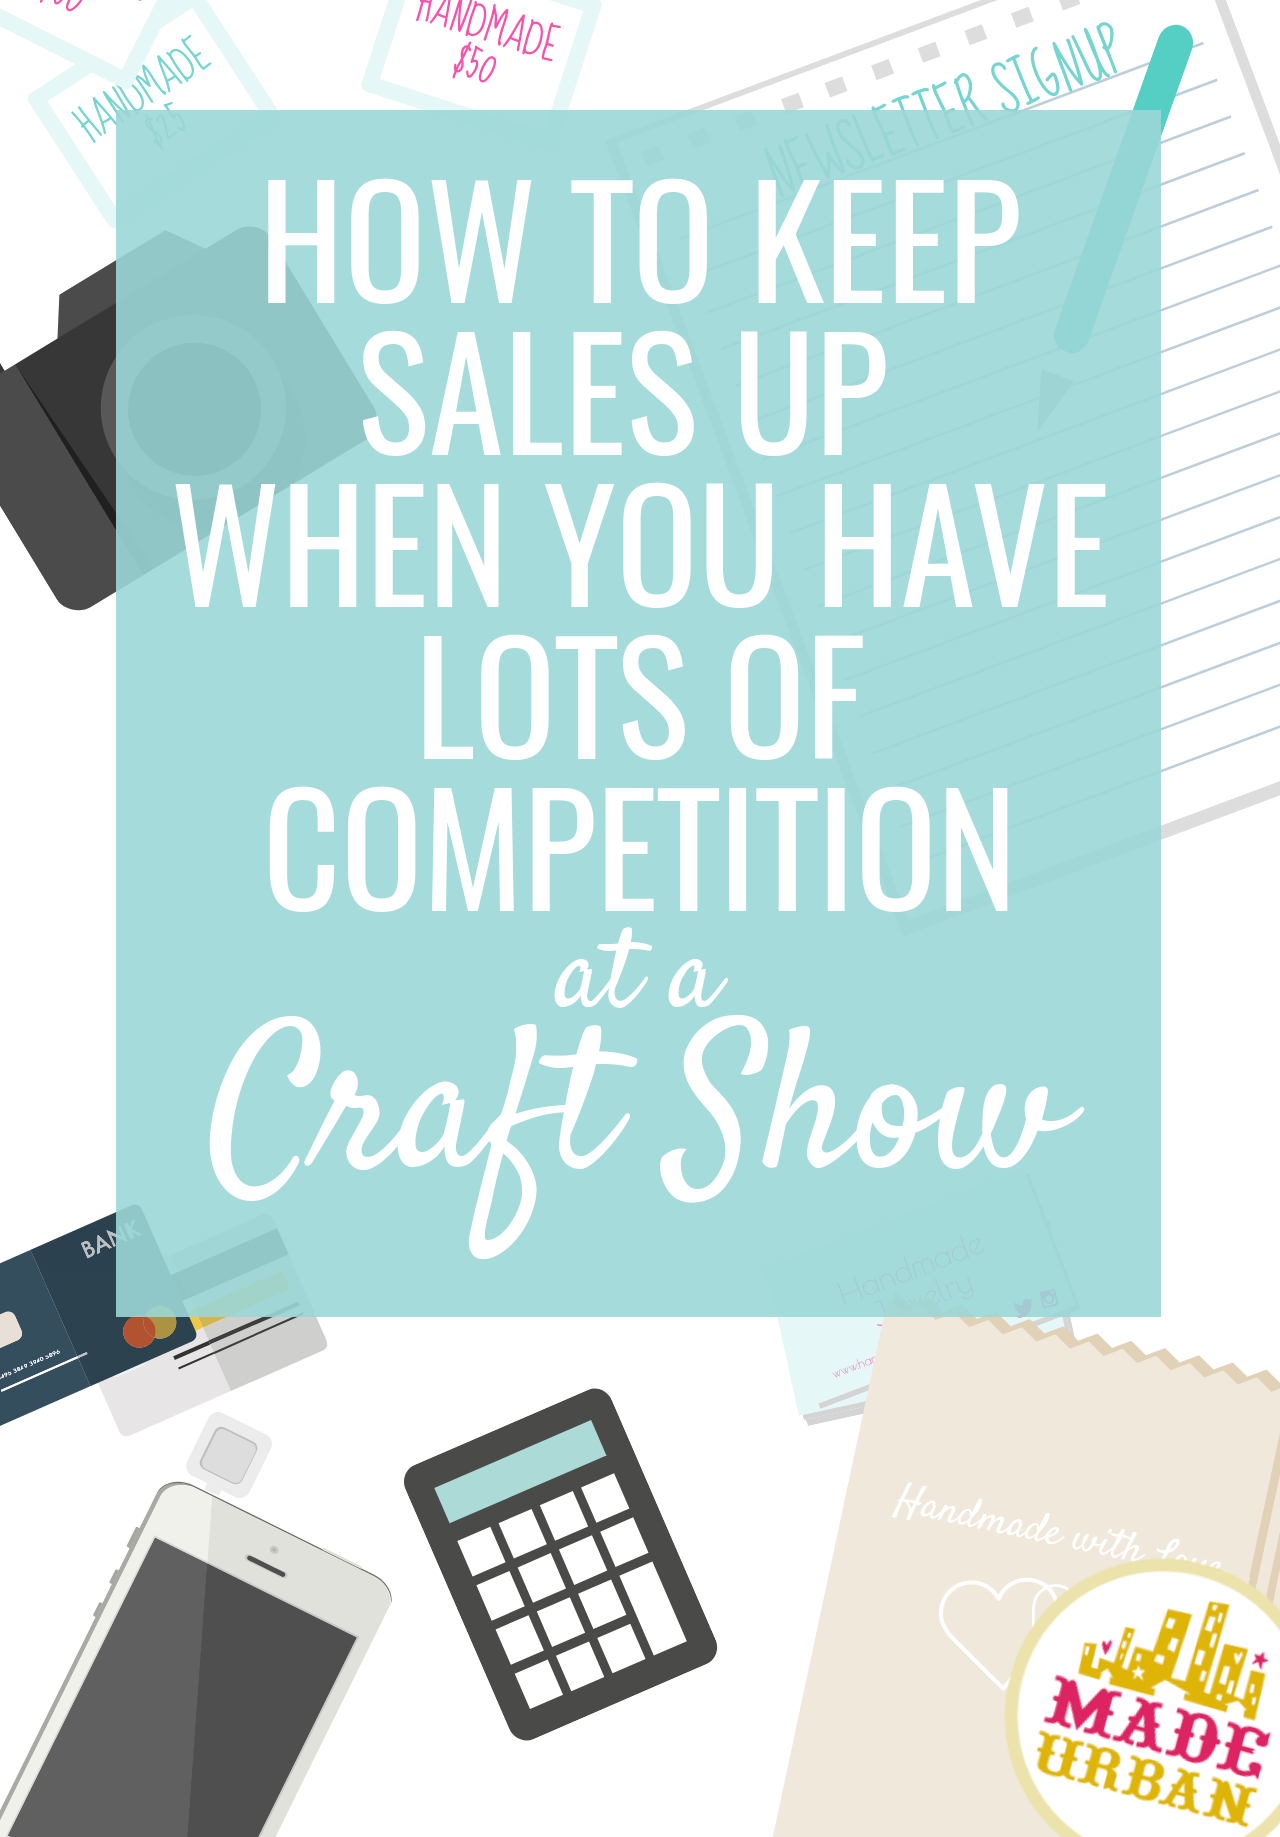 Craft shows can be competitive depending on the product you sell. If someone selling a similar item is close by, here's how to ensure your sales don't drop.